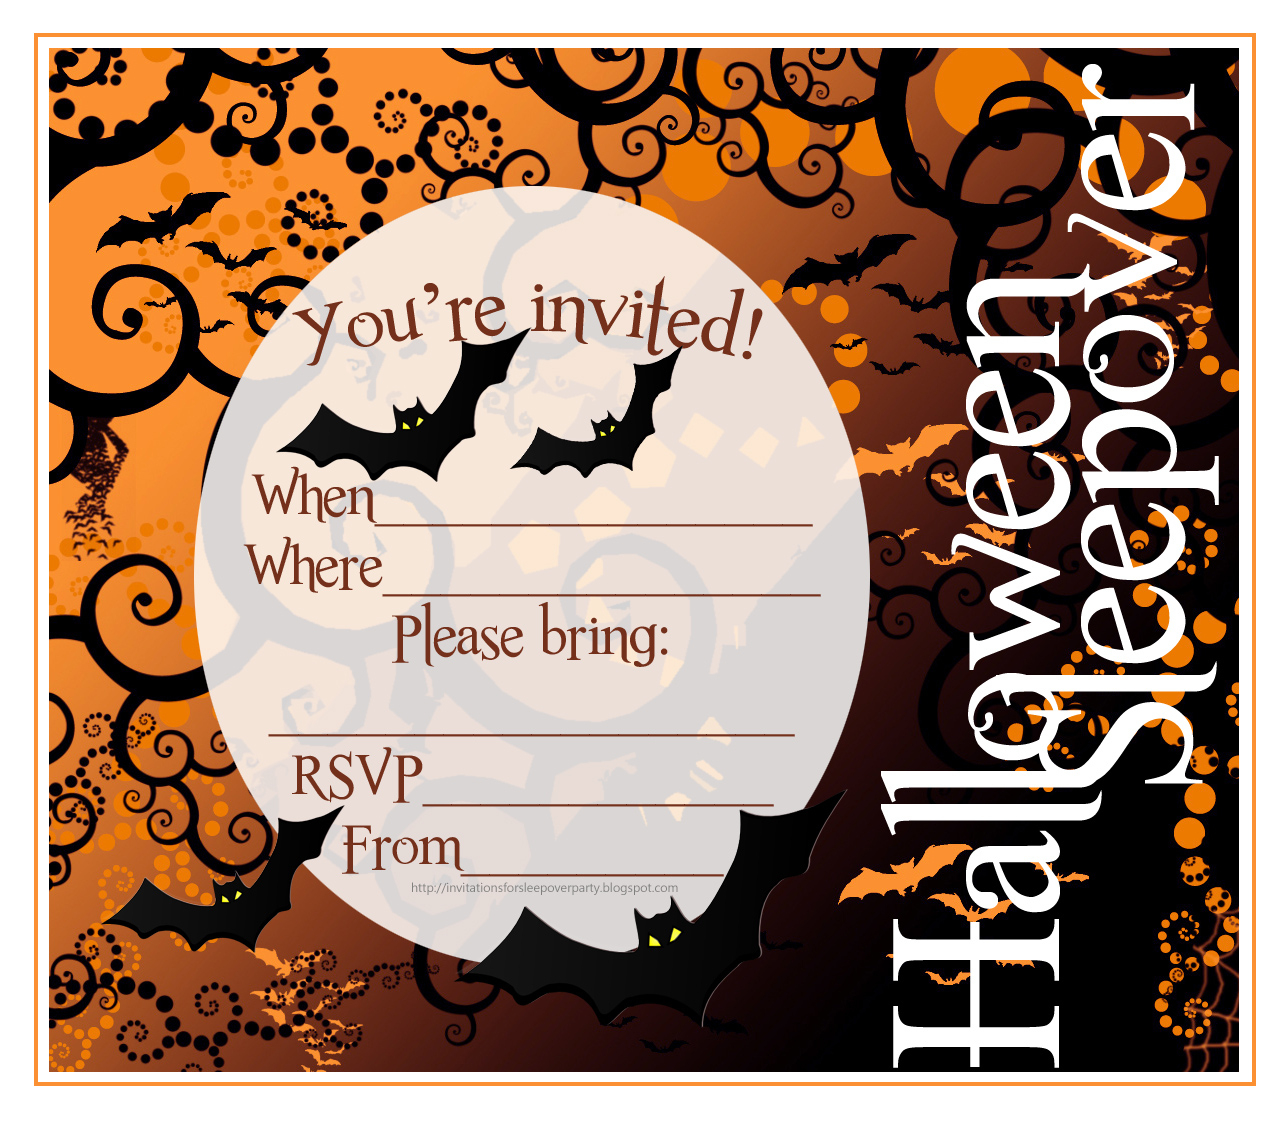 Free Printable Halloween Sleepover Invitations | Halloween Arts - Free Printable Halloween Invitations